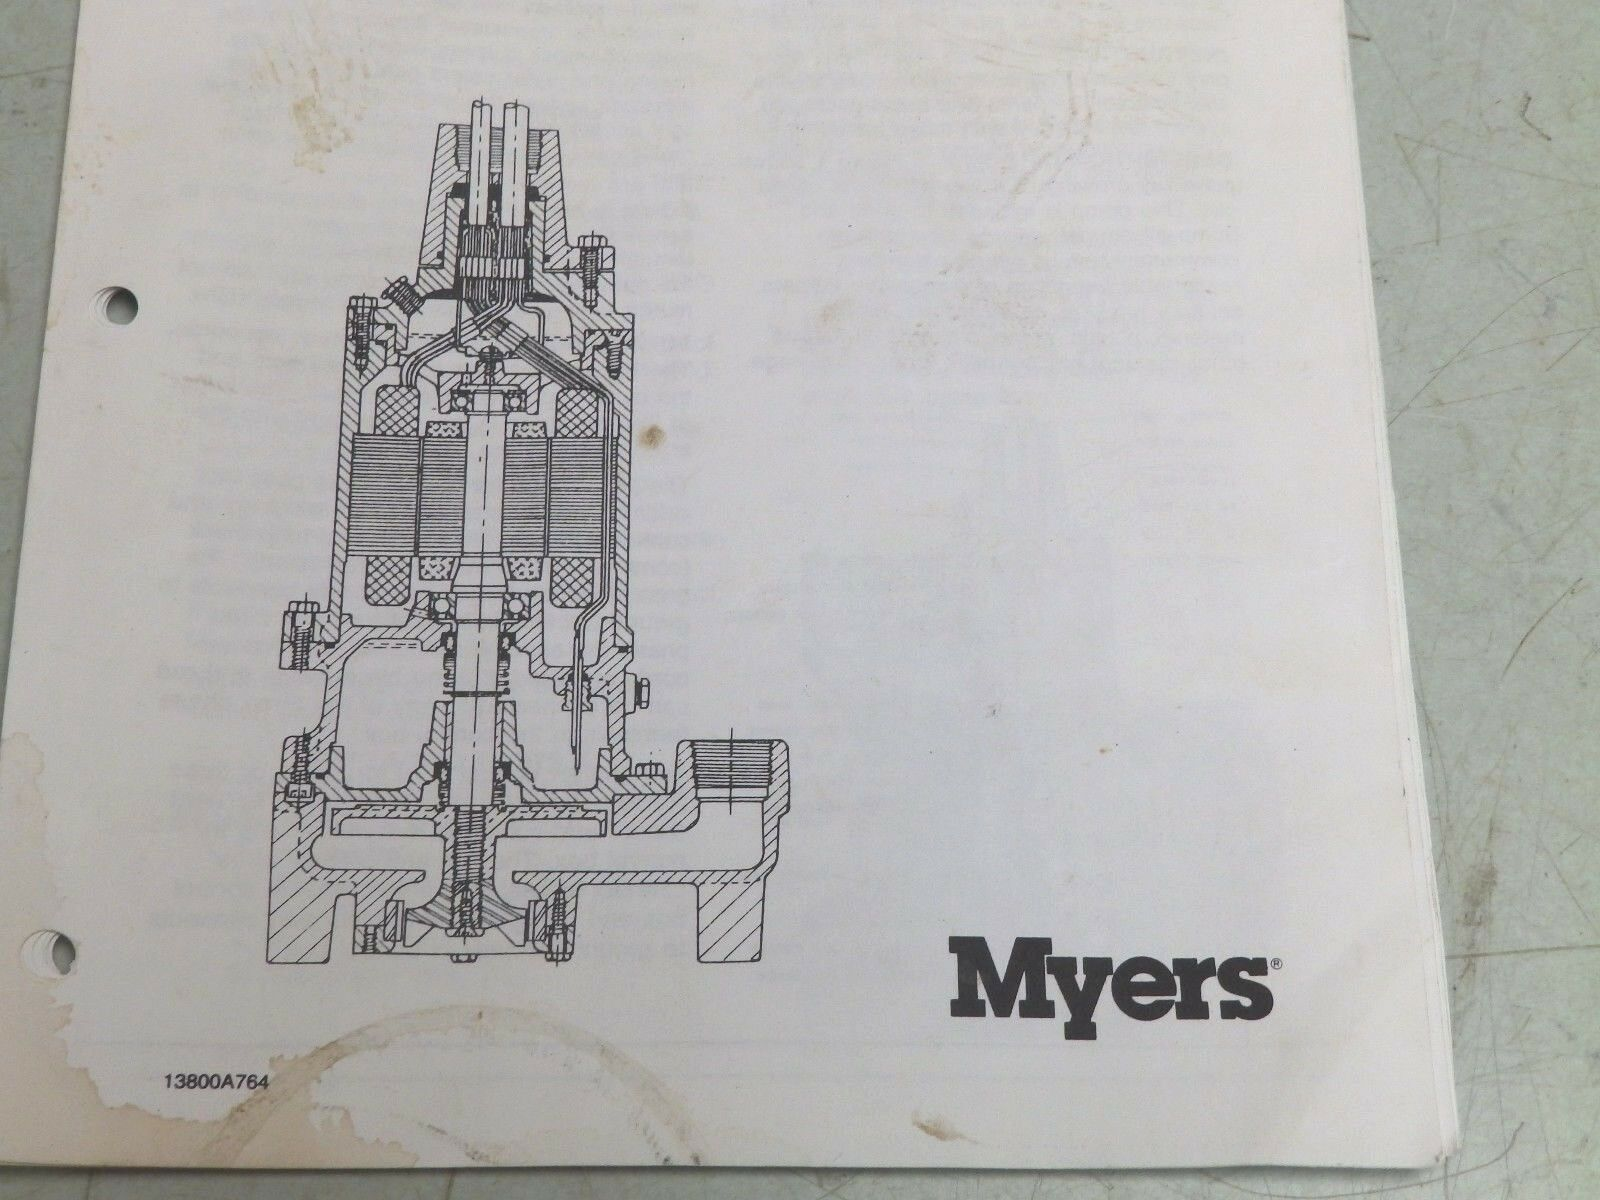 hight resolution of myers grinder pump wiring diagram